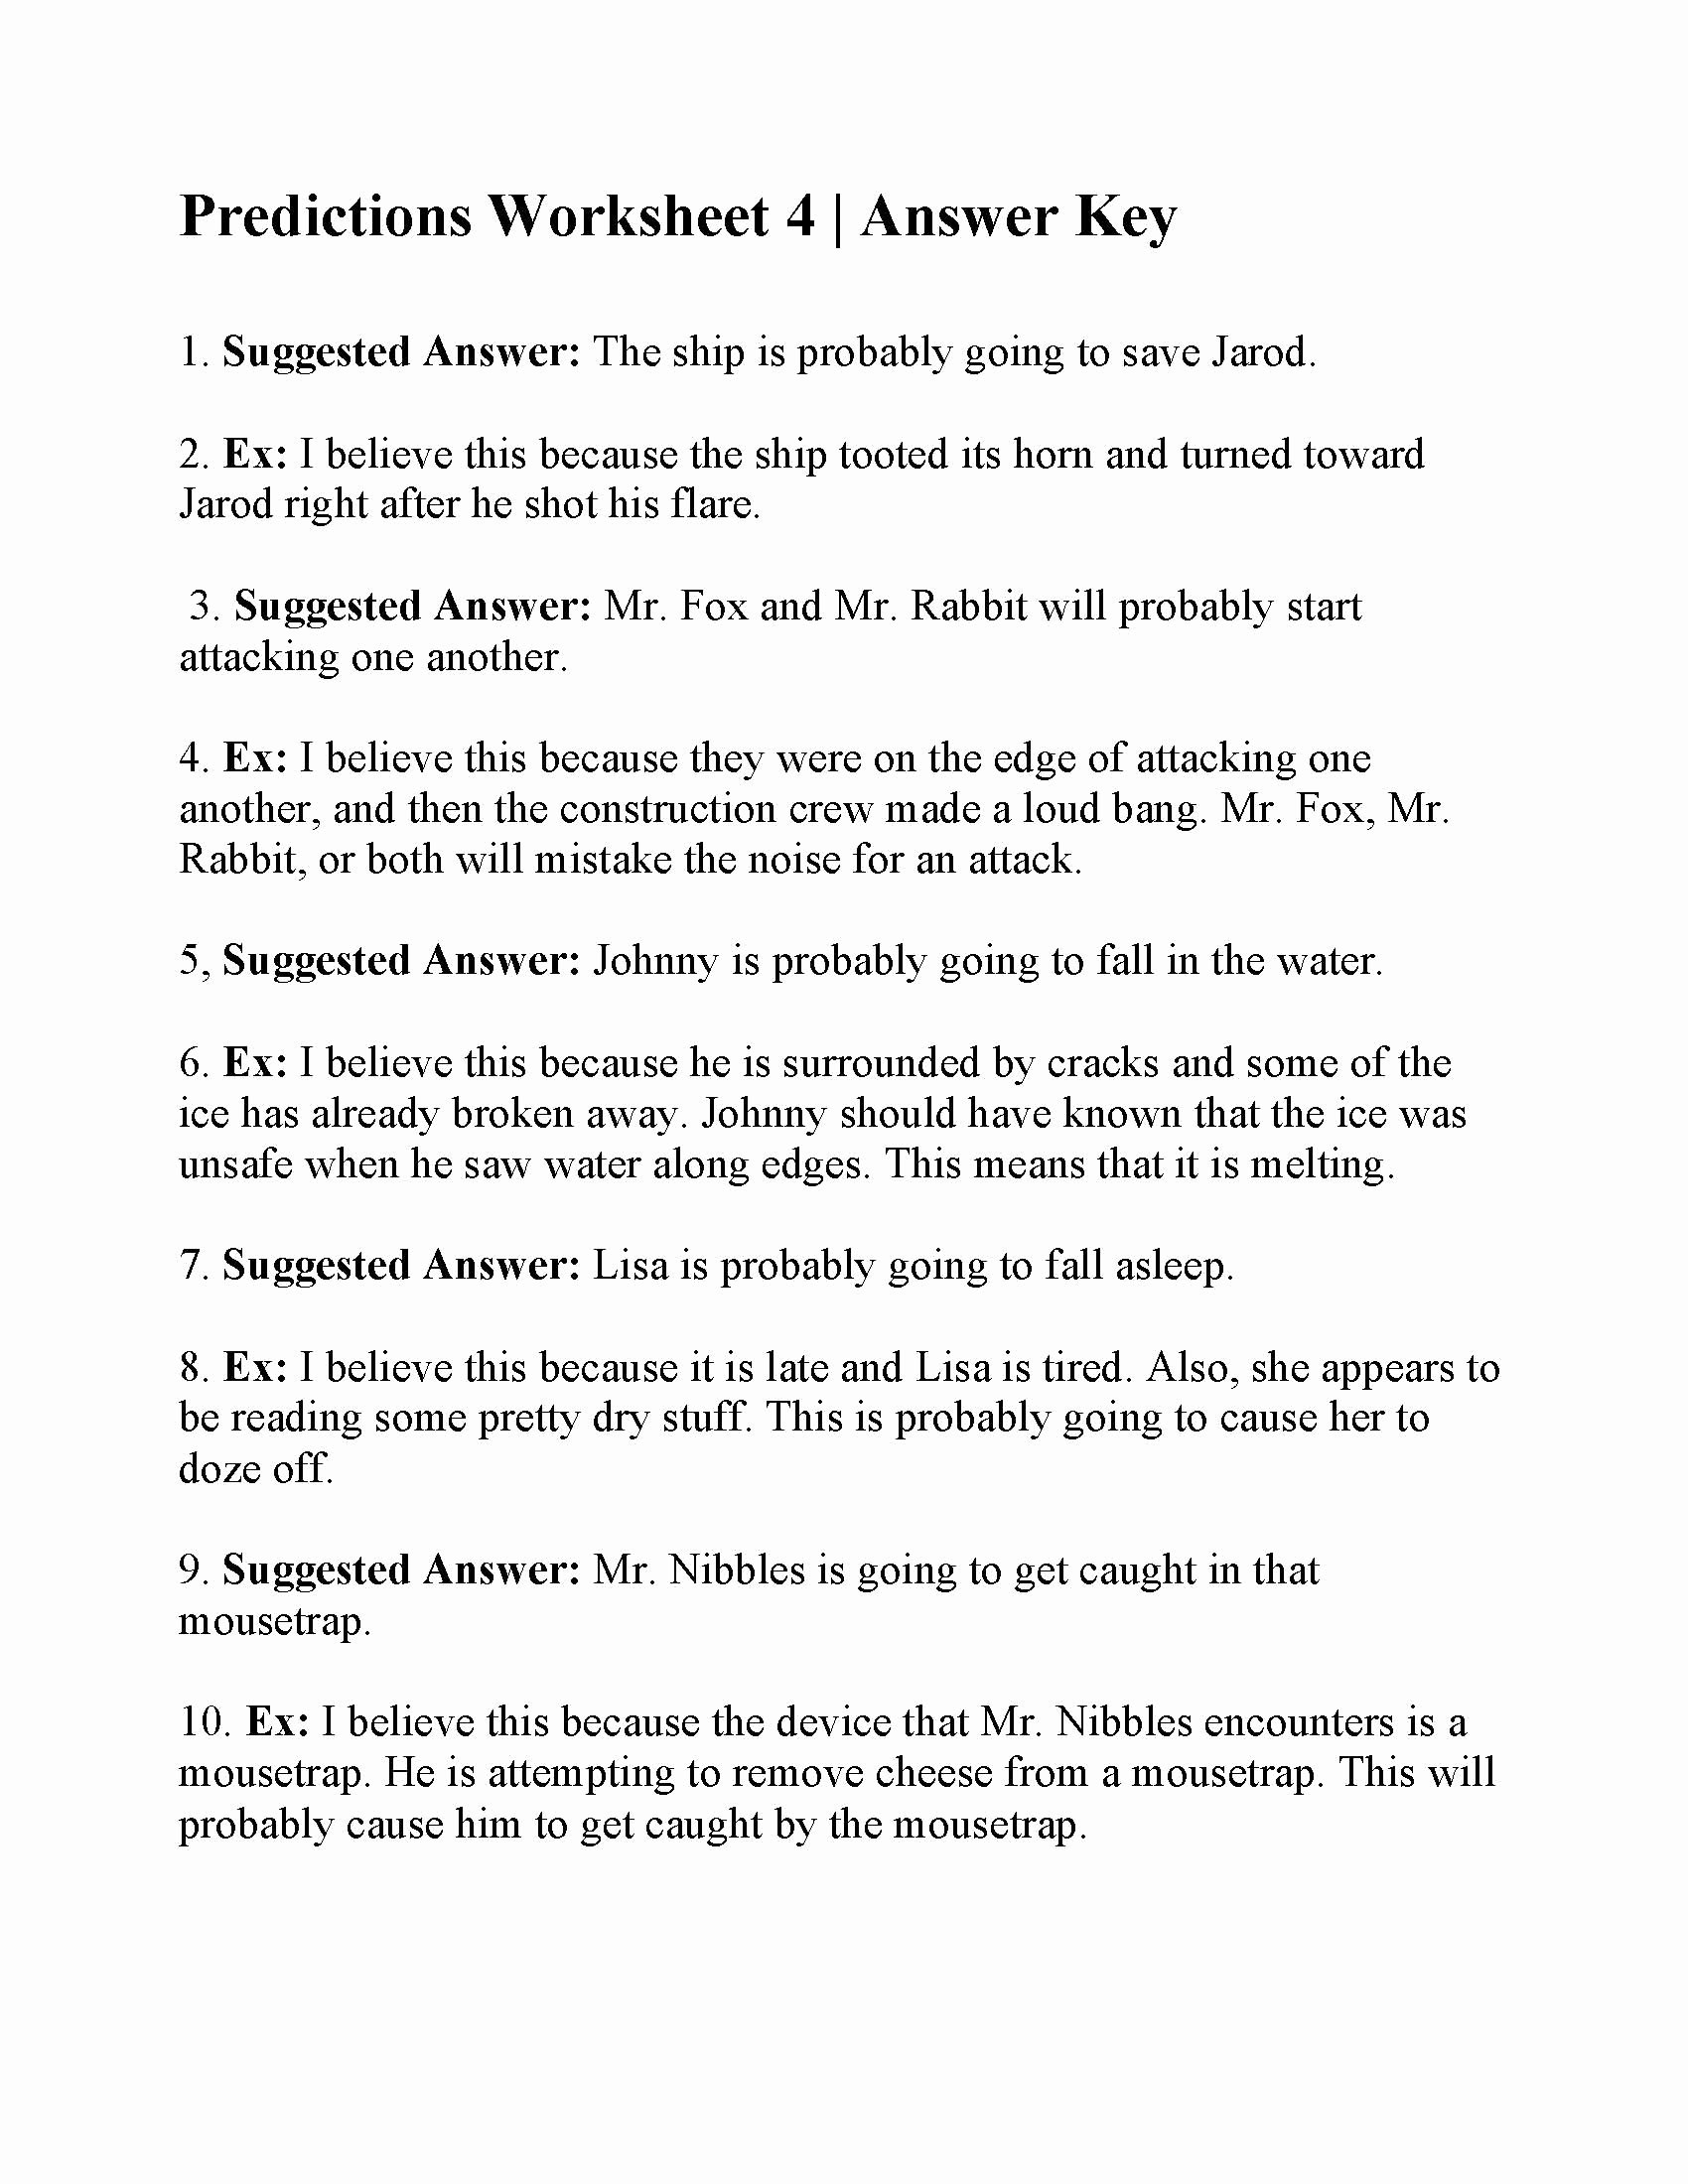 Making Predictions In Reading Worksheets Best Of Making Predictions Worksheet 4